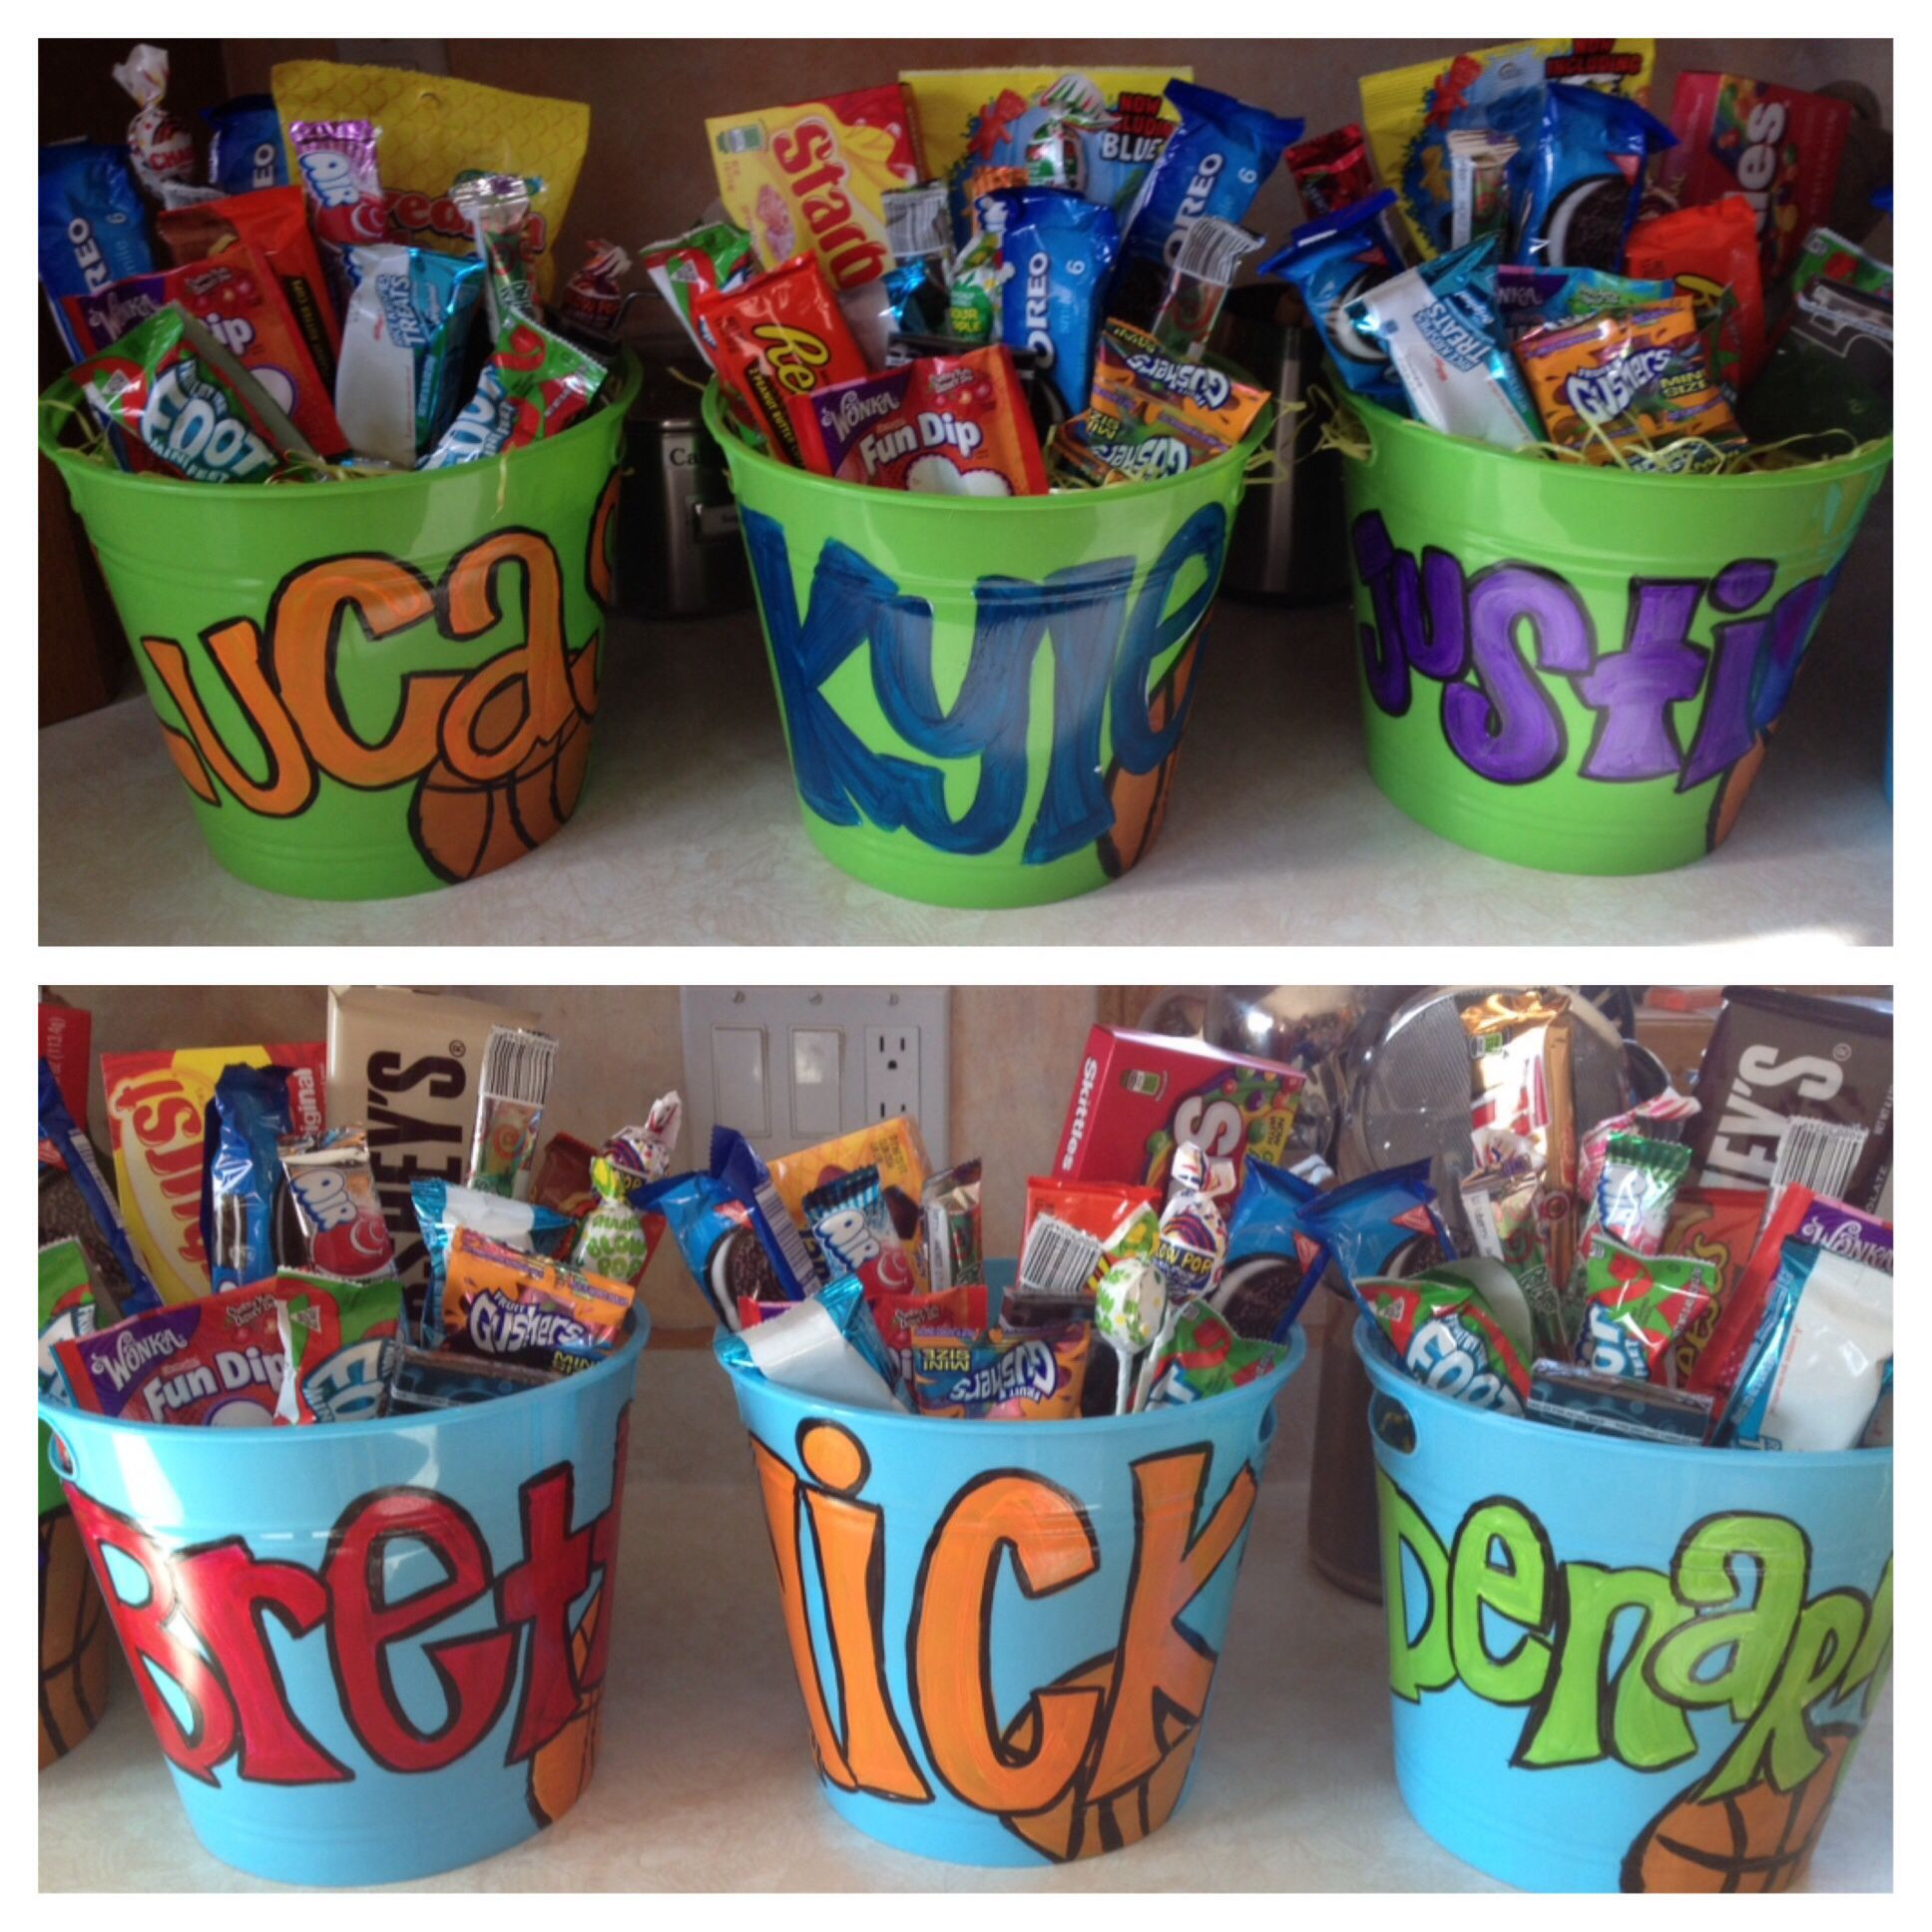 Best ideas about Basketball Senior Night Gift Ideas . Save or Pin Best 25 Senior night ts ideas on Pinterest Now.